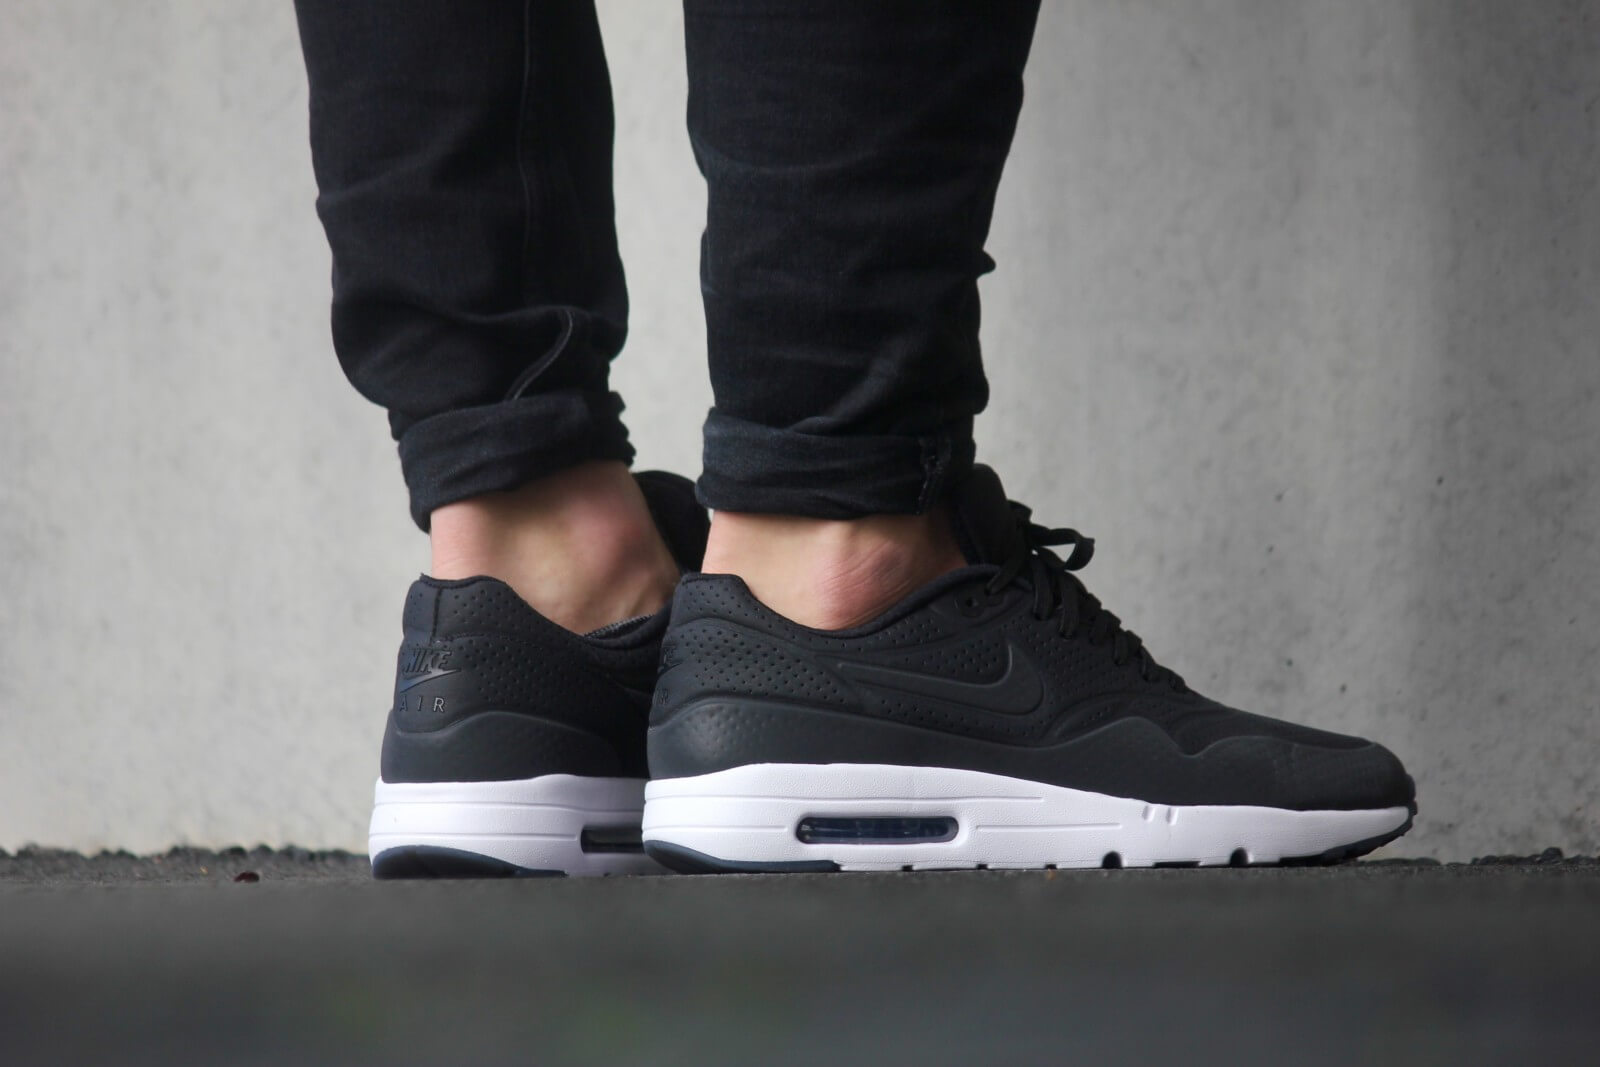 Nike Air Max 1 Ultra Moire Black black White 705297 013